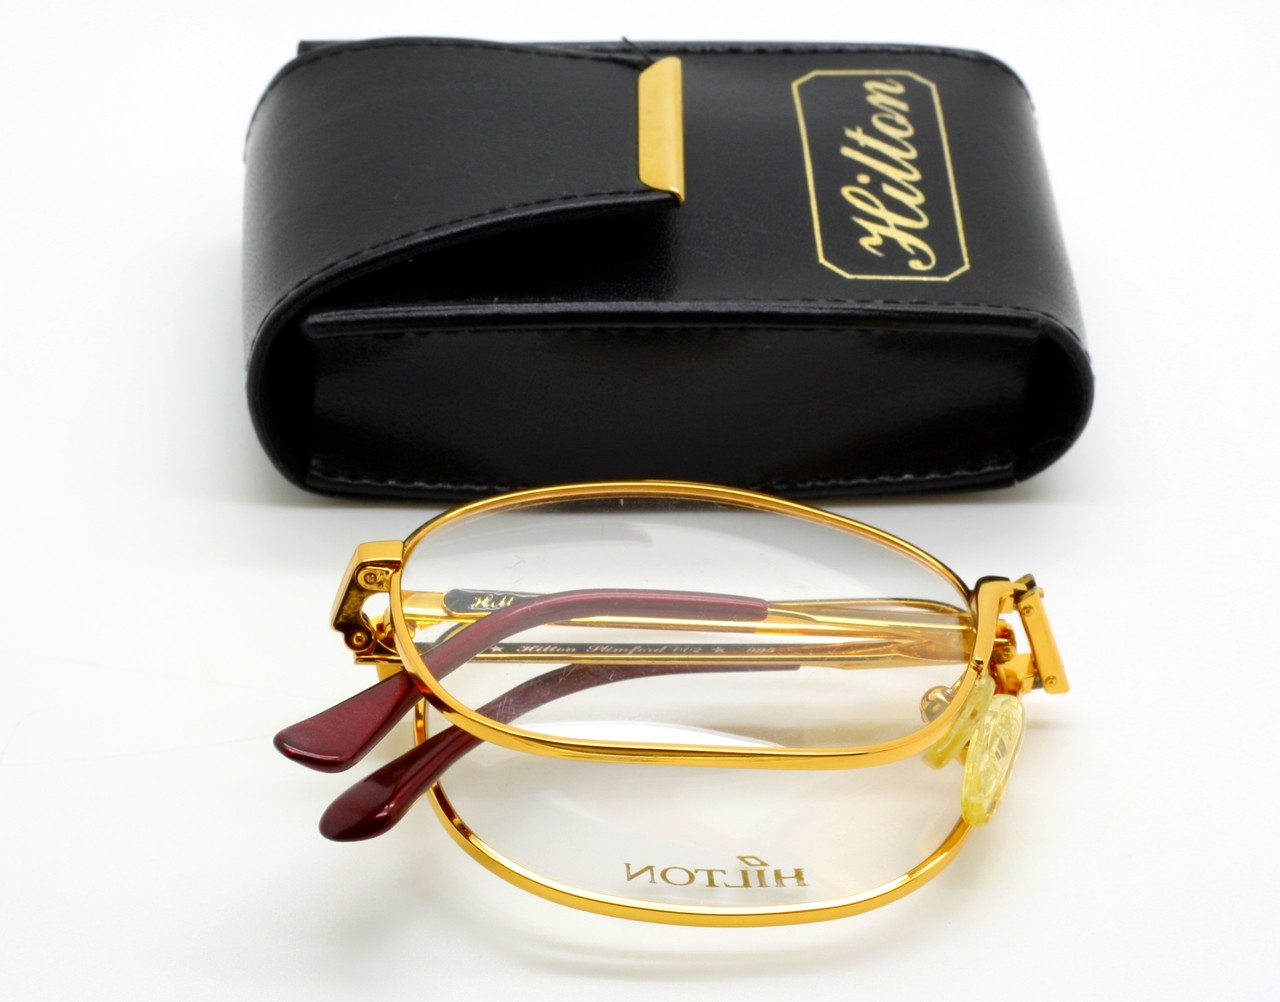 e8f30e7ae1 ONLY 1 LEFT ! Hilton Full Size 24kt Gold Plated Luxury Glasses that ...